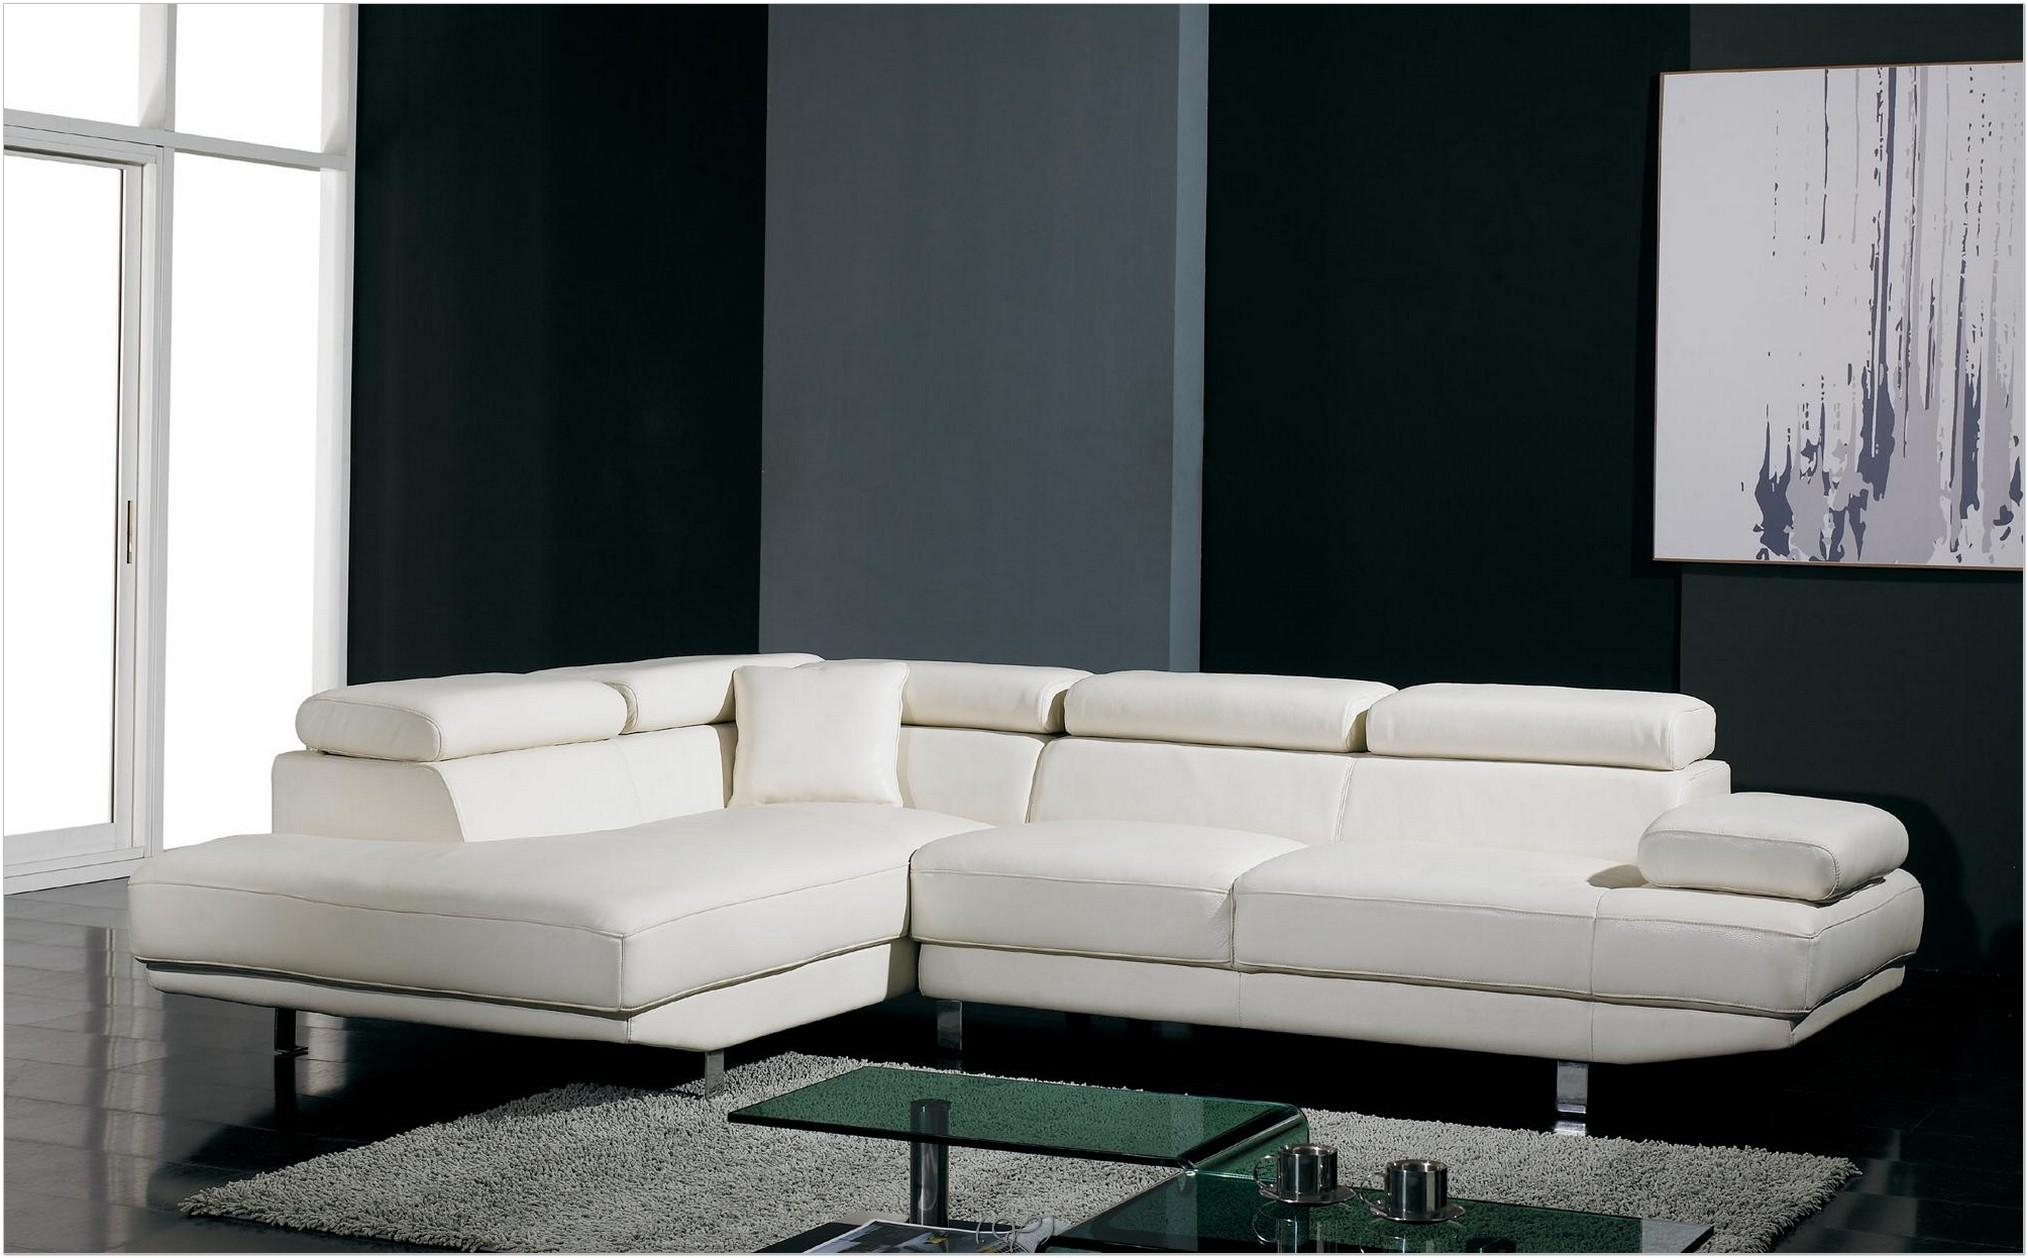 Interior : Modern Couches White Leather Sofa Royal Blue Sectional With Regard To White Modern Sofas (View 12 of 20)